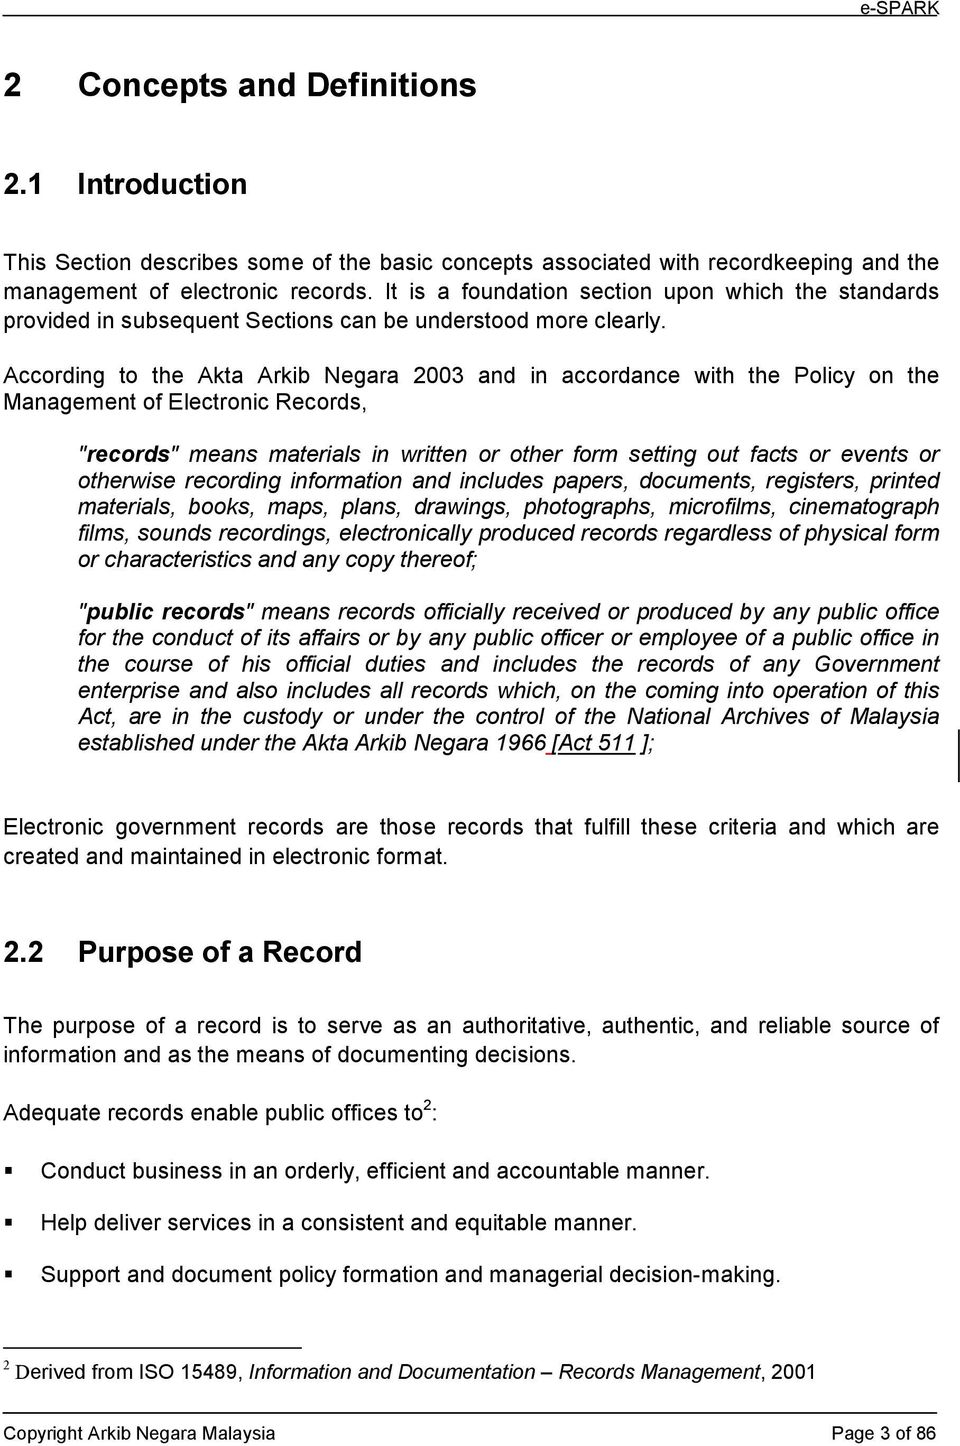 "According to the Akta Arkib Negara 2003 and in accordance with the Policy on the Management of Electronic Records, ""records"" means materials in written or other form setting out facts or events or"